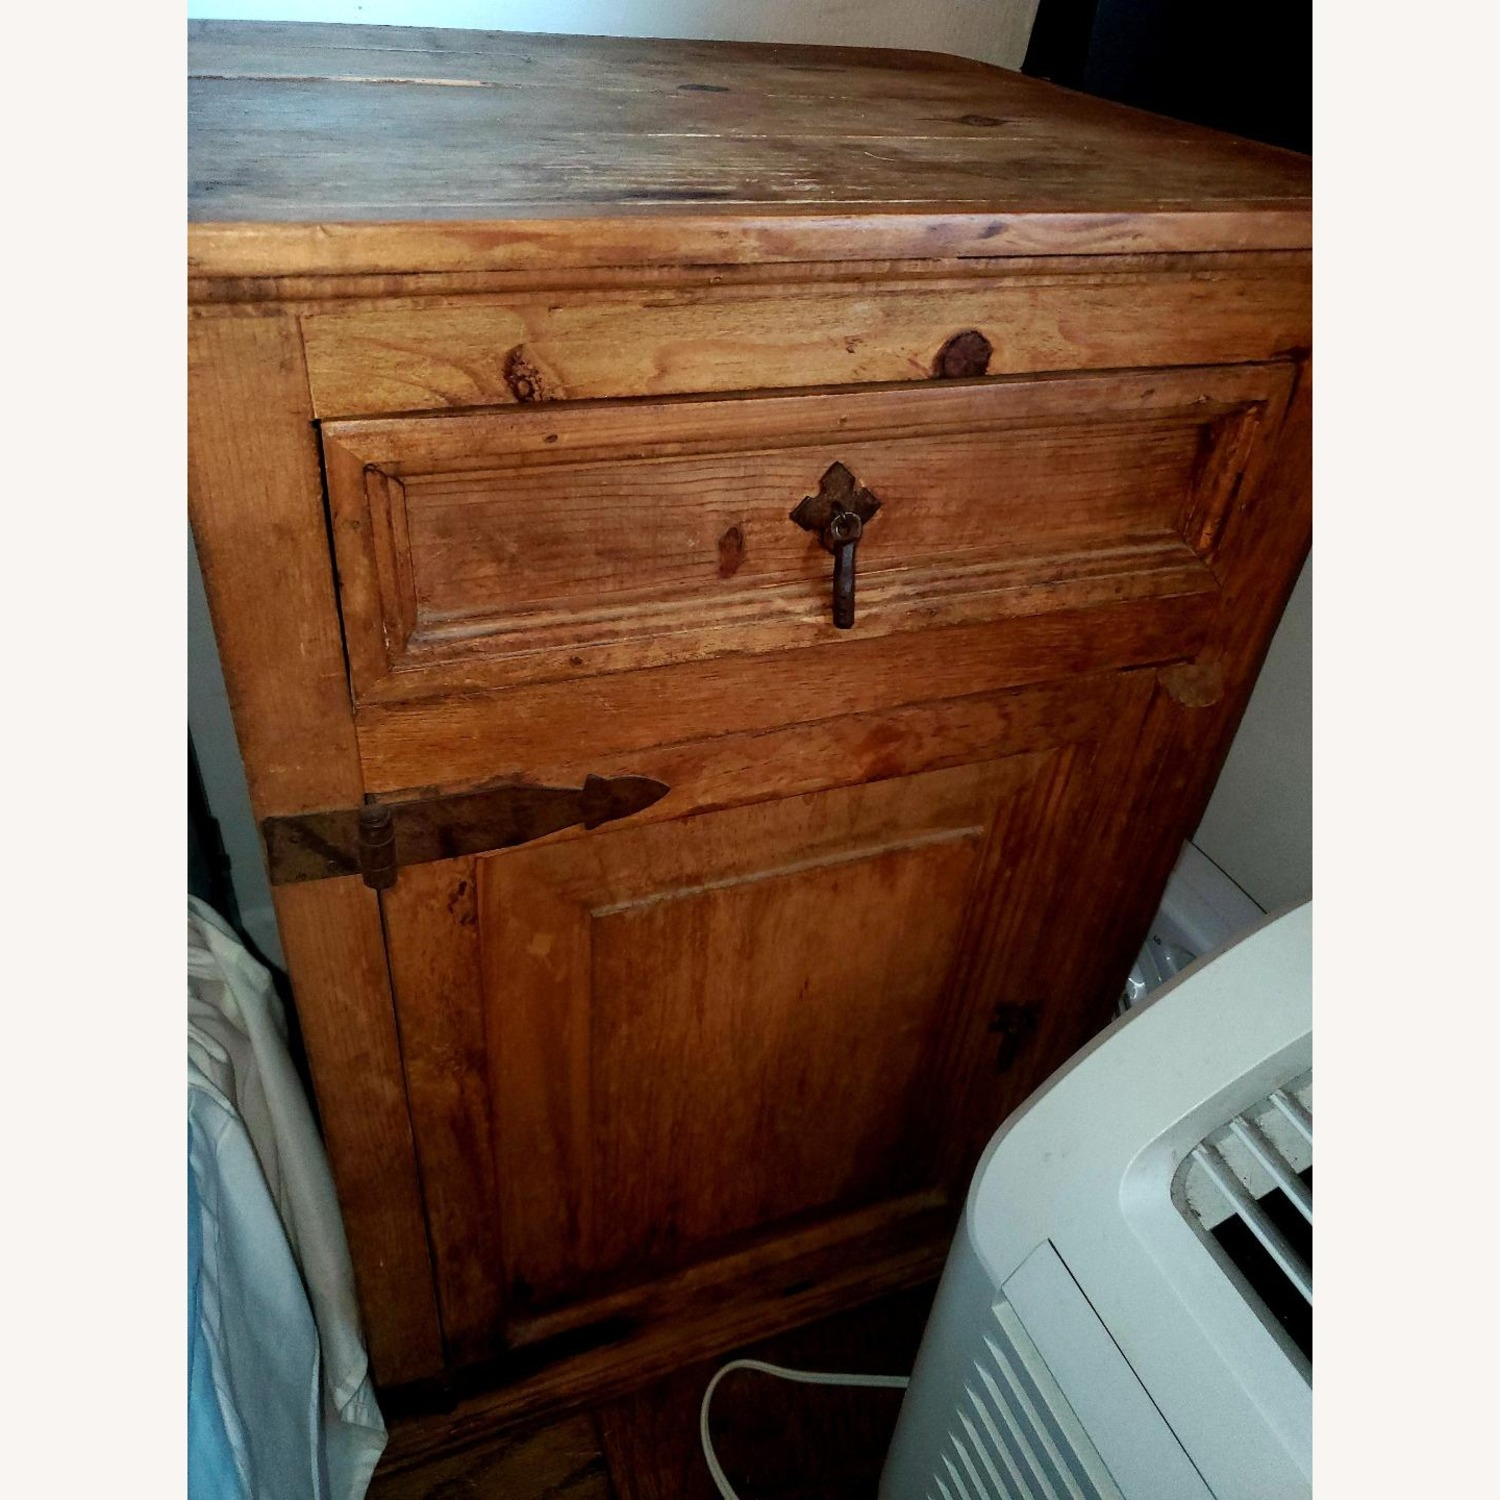 Wooden Bedside Tables with Rustic Hardware - image-3